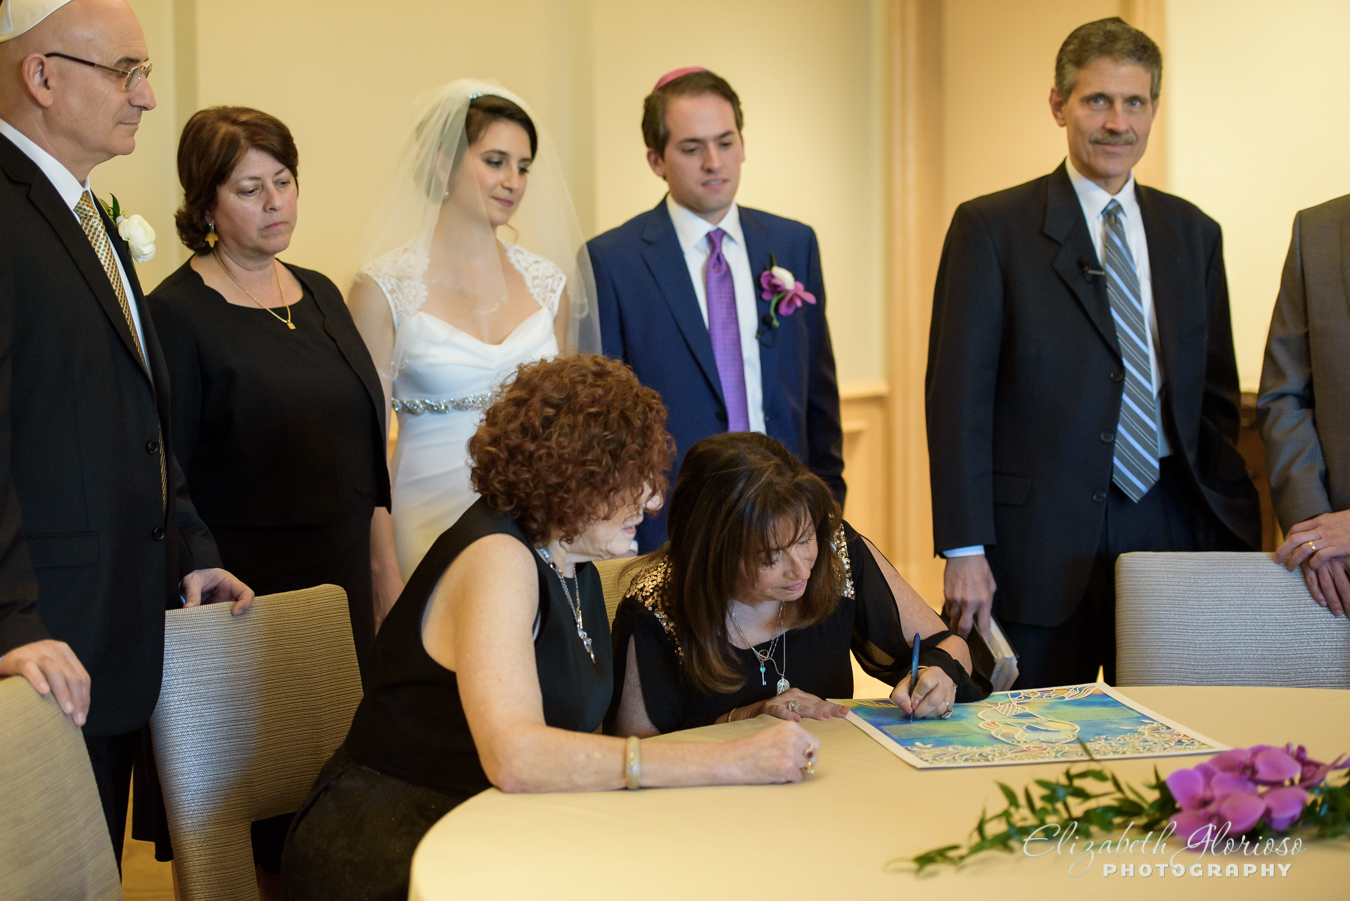 Ketubah signing photo at the Ritz Carlton Cleveland